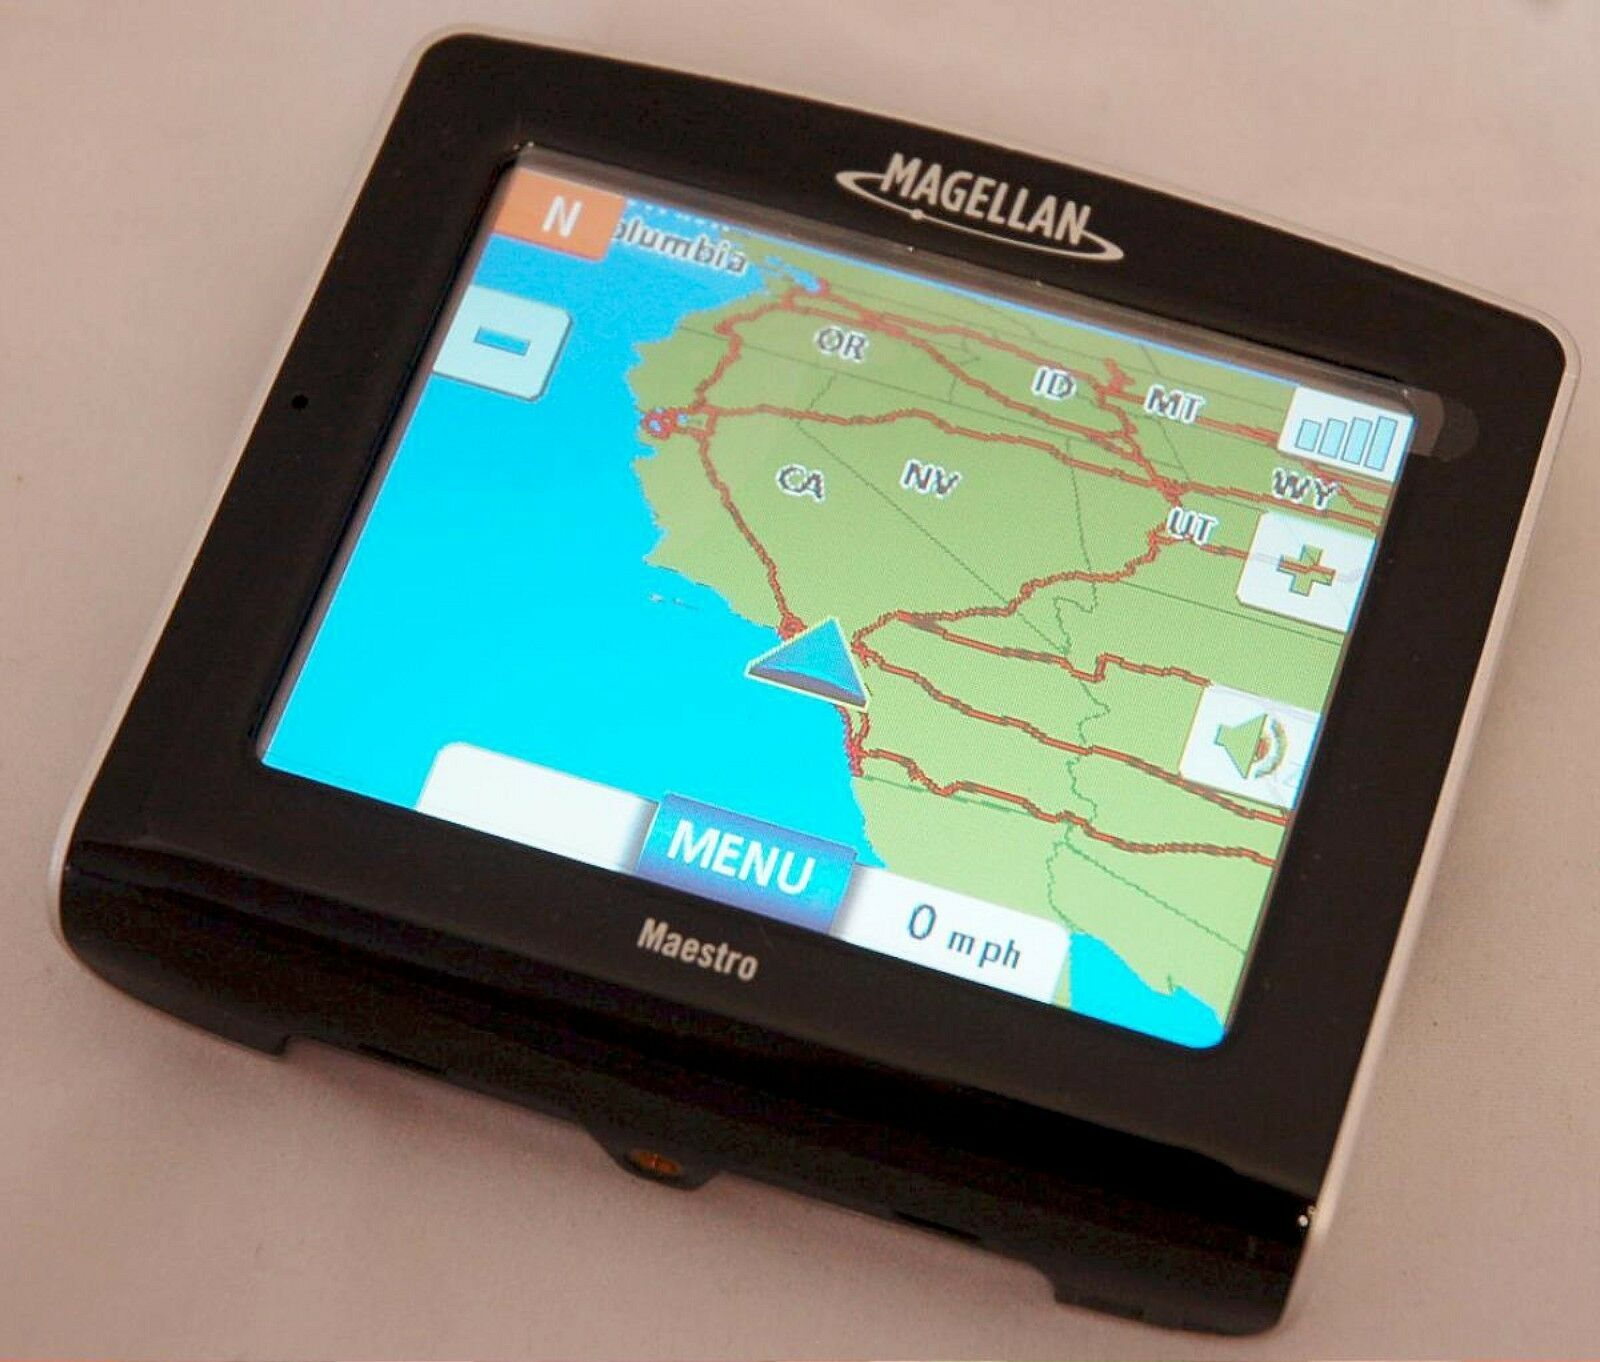 magellan maestro 3250 automotive mountable ebay rh ebay com Magellan Maestro 3100 Manual Magellan GPS Account